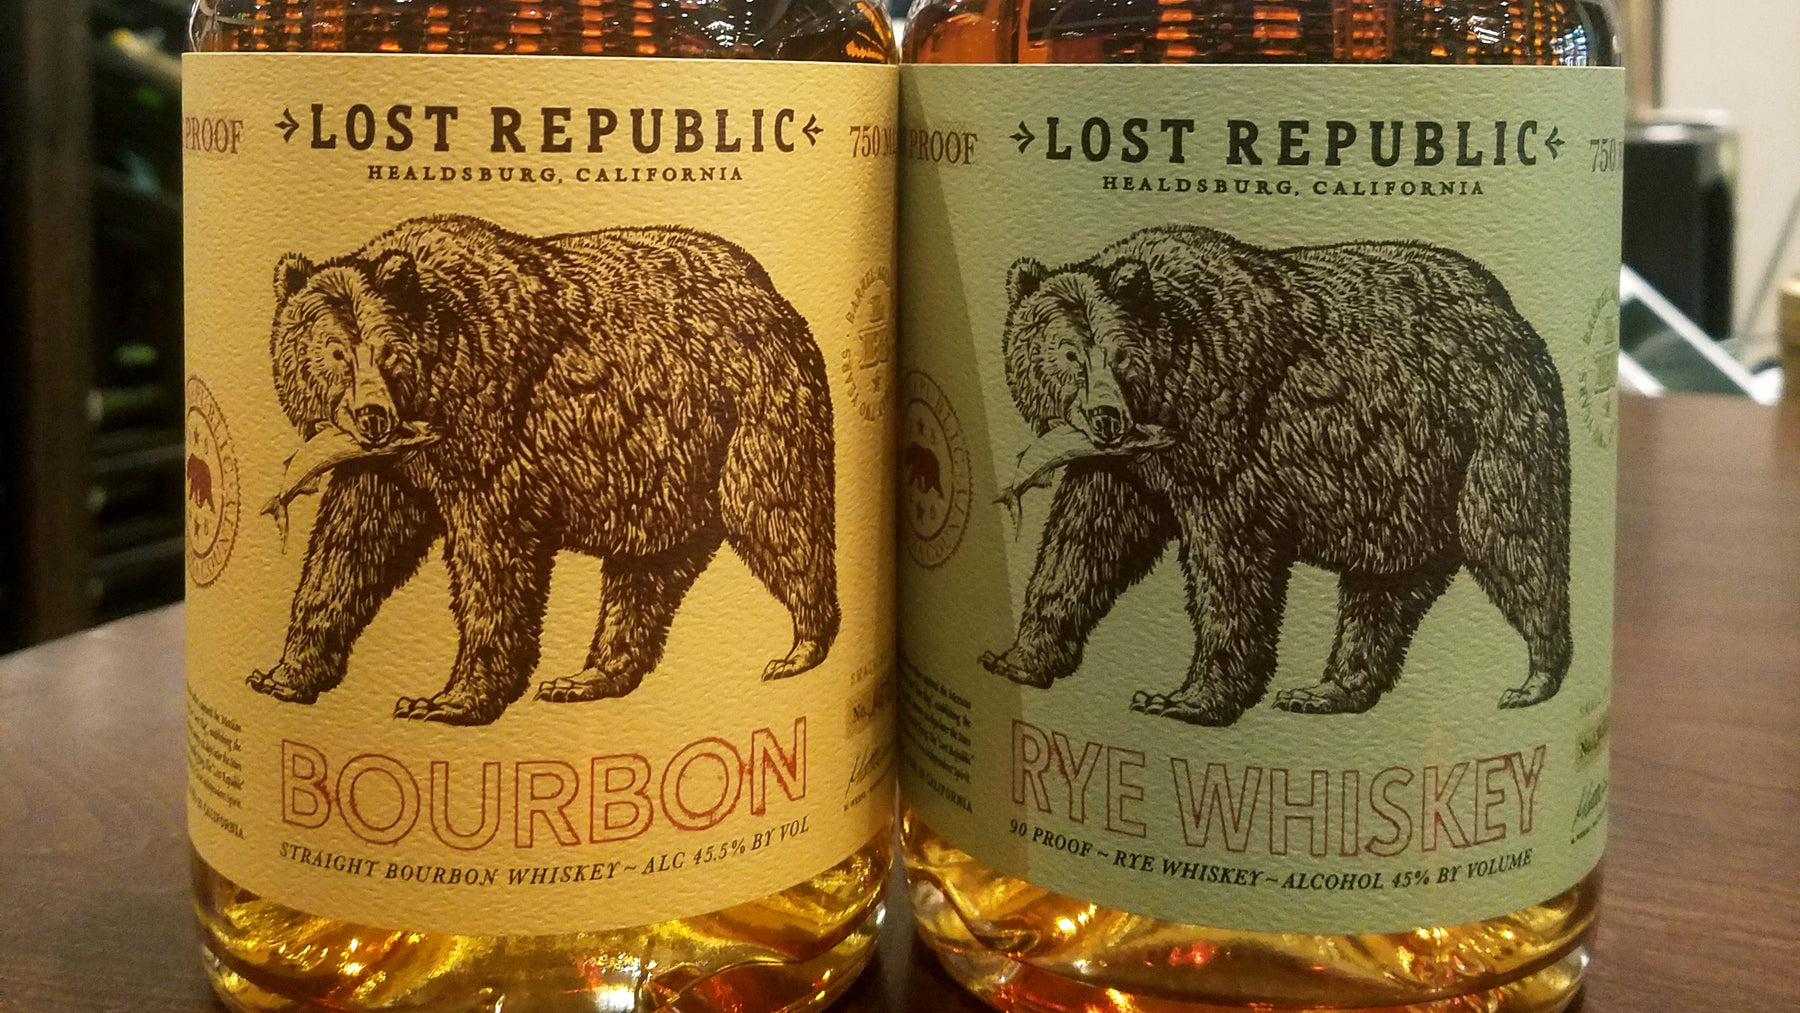 Lost Republic Whiskey | Free Tasting Friday, August 2nd 5-7pm